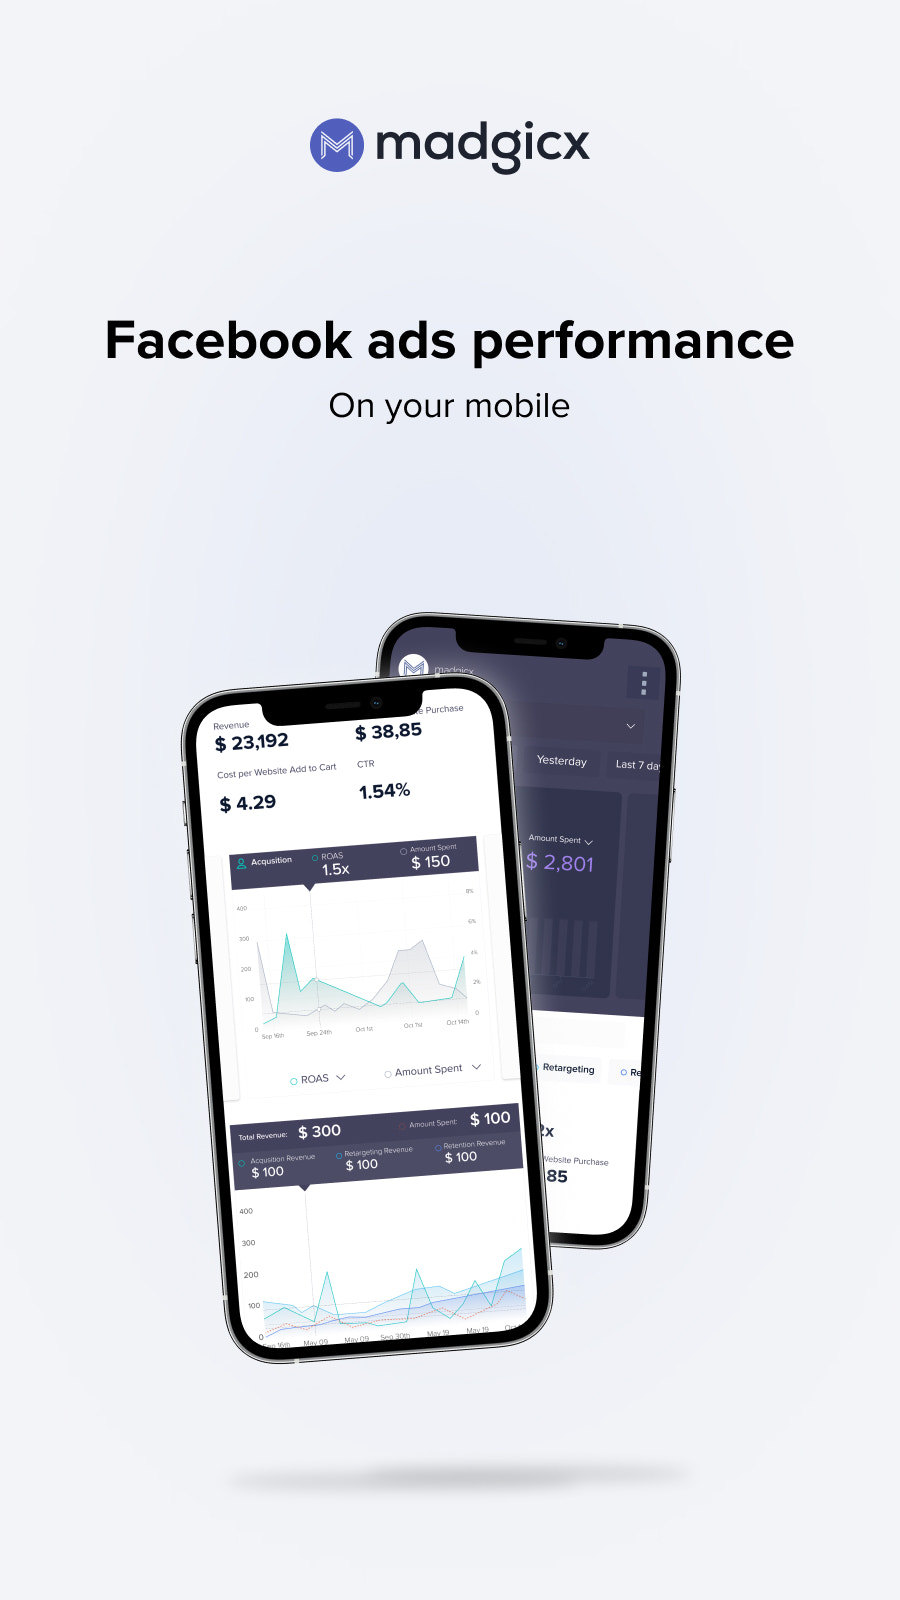 Madgicx Mobile - live ad performance reporting on your mobile